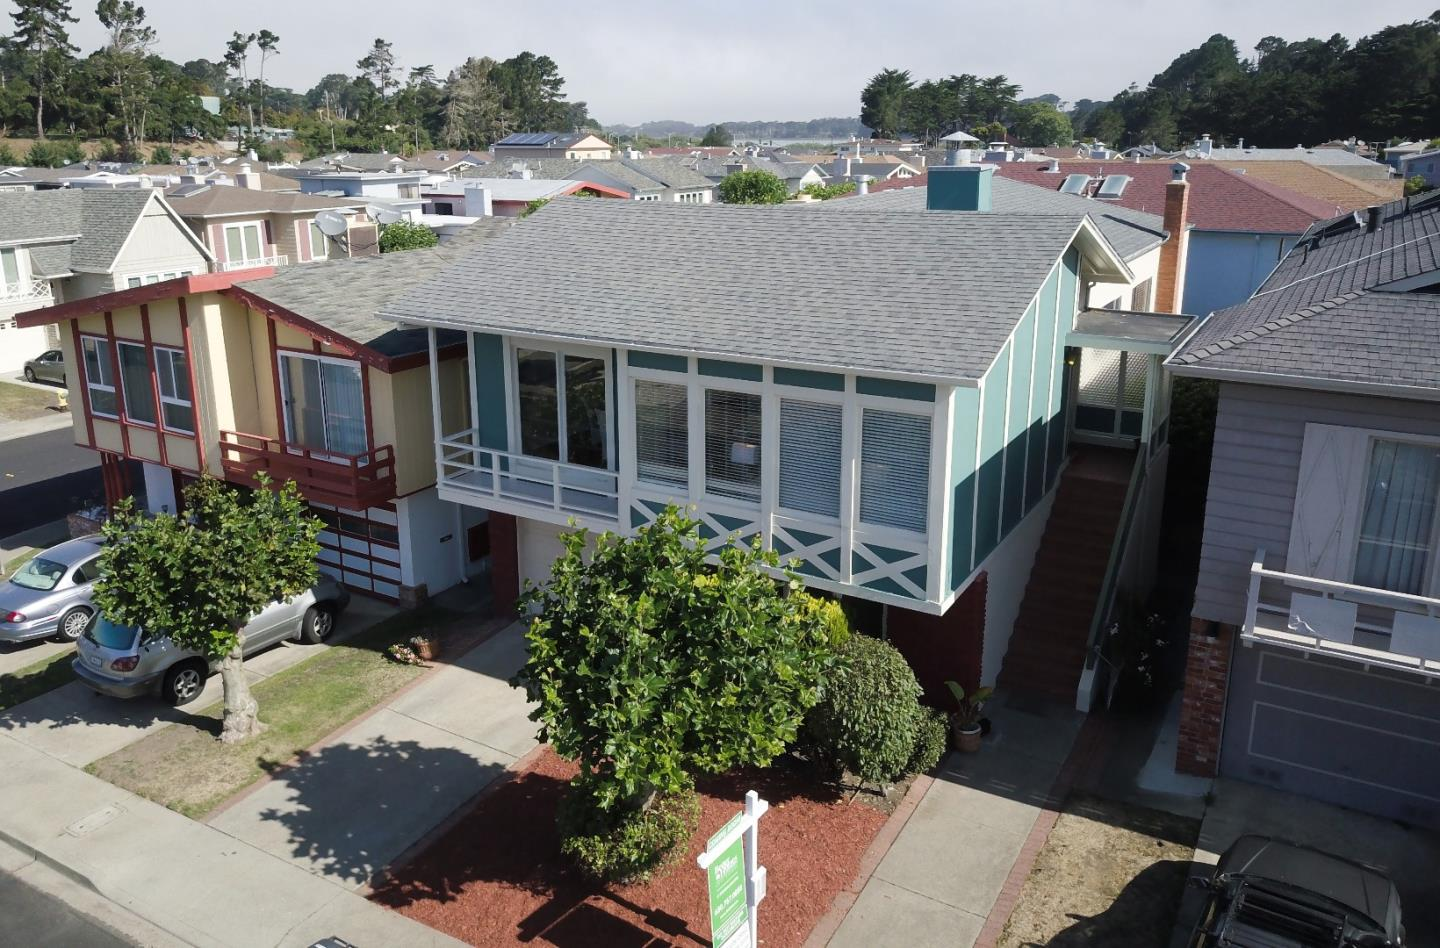 Maison unifamiliale pour l Vente à 30 Parkside Avenue Daly City, Californie 94015 États-Unis